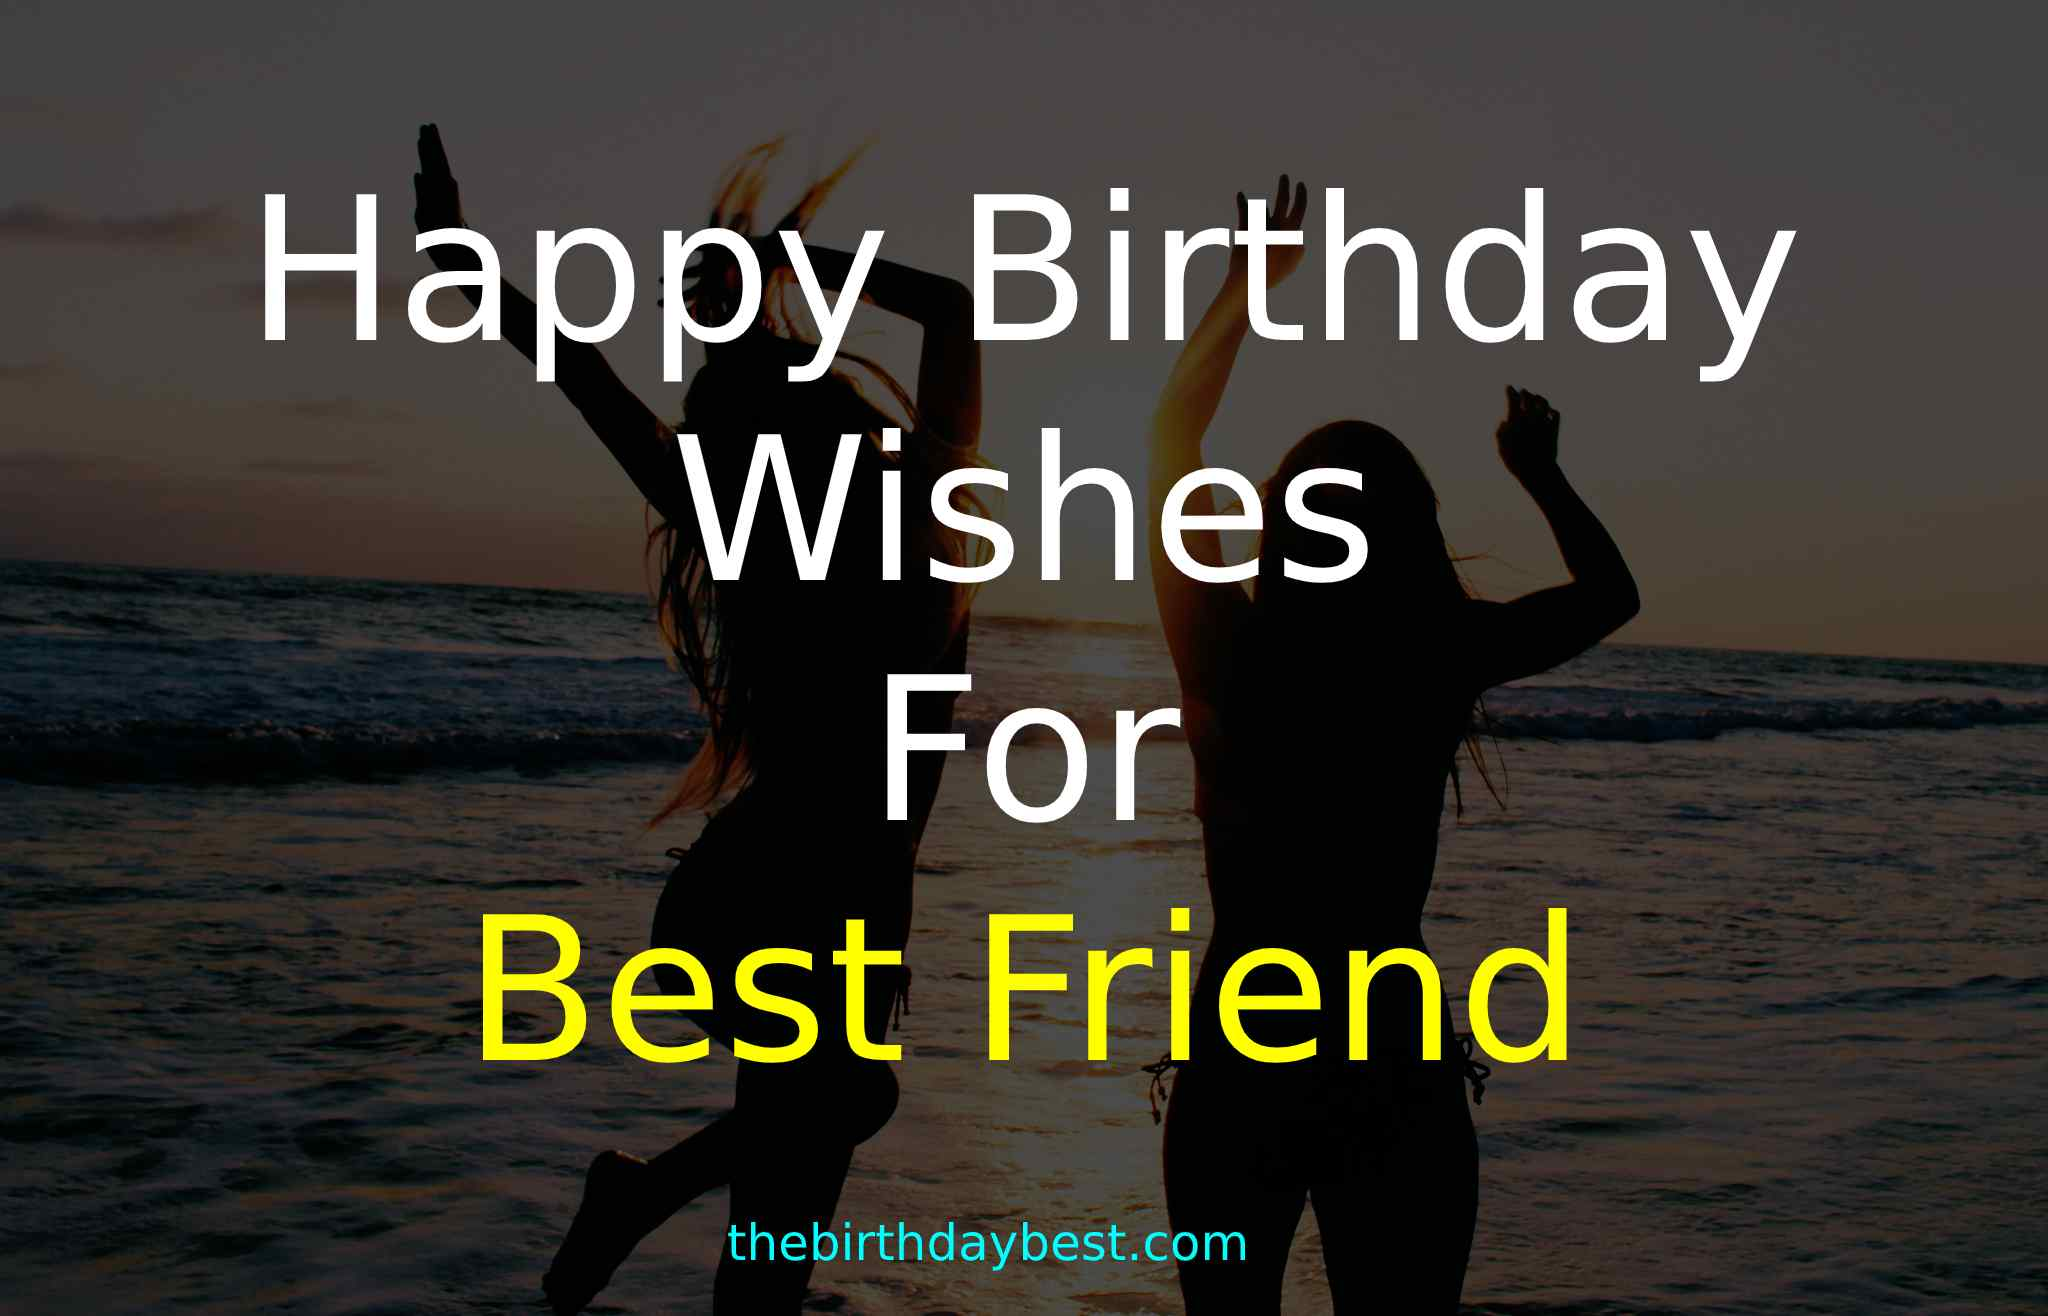 100 Emotional Happy Birthday Wishes For Best Friend Of 2020